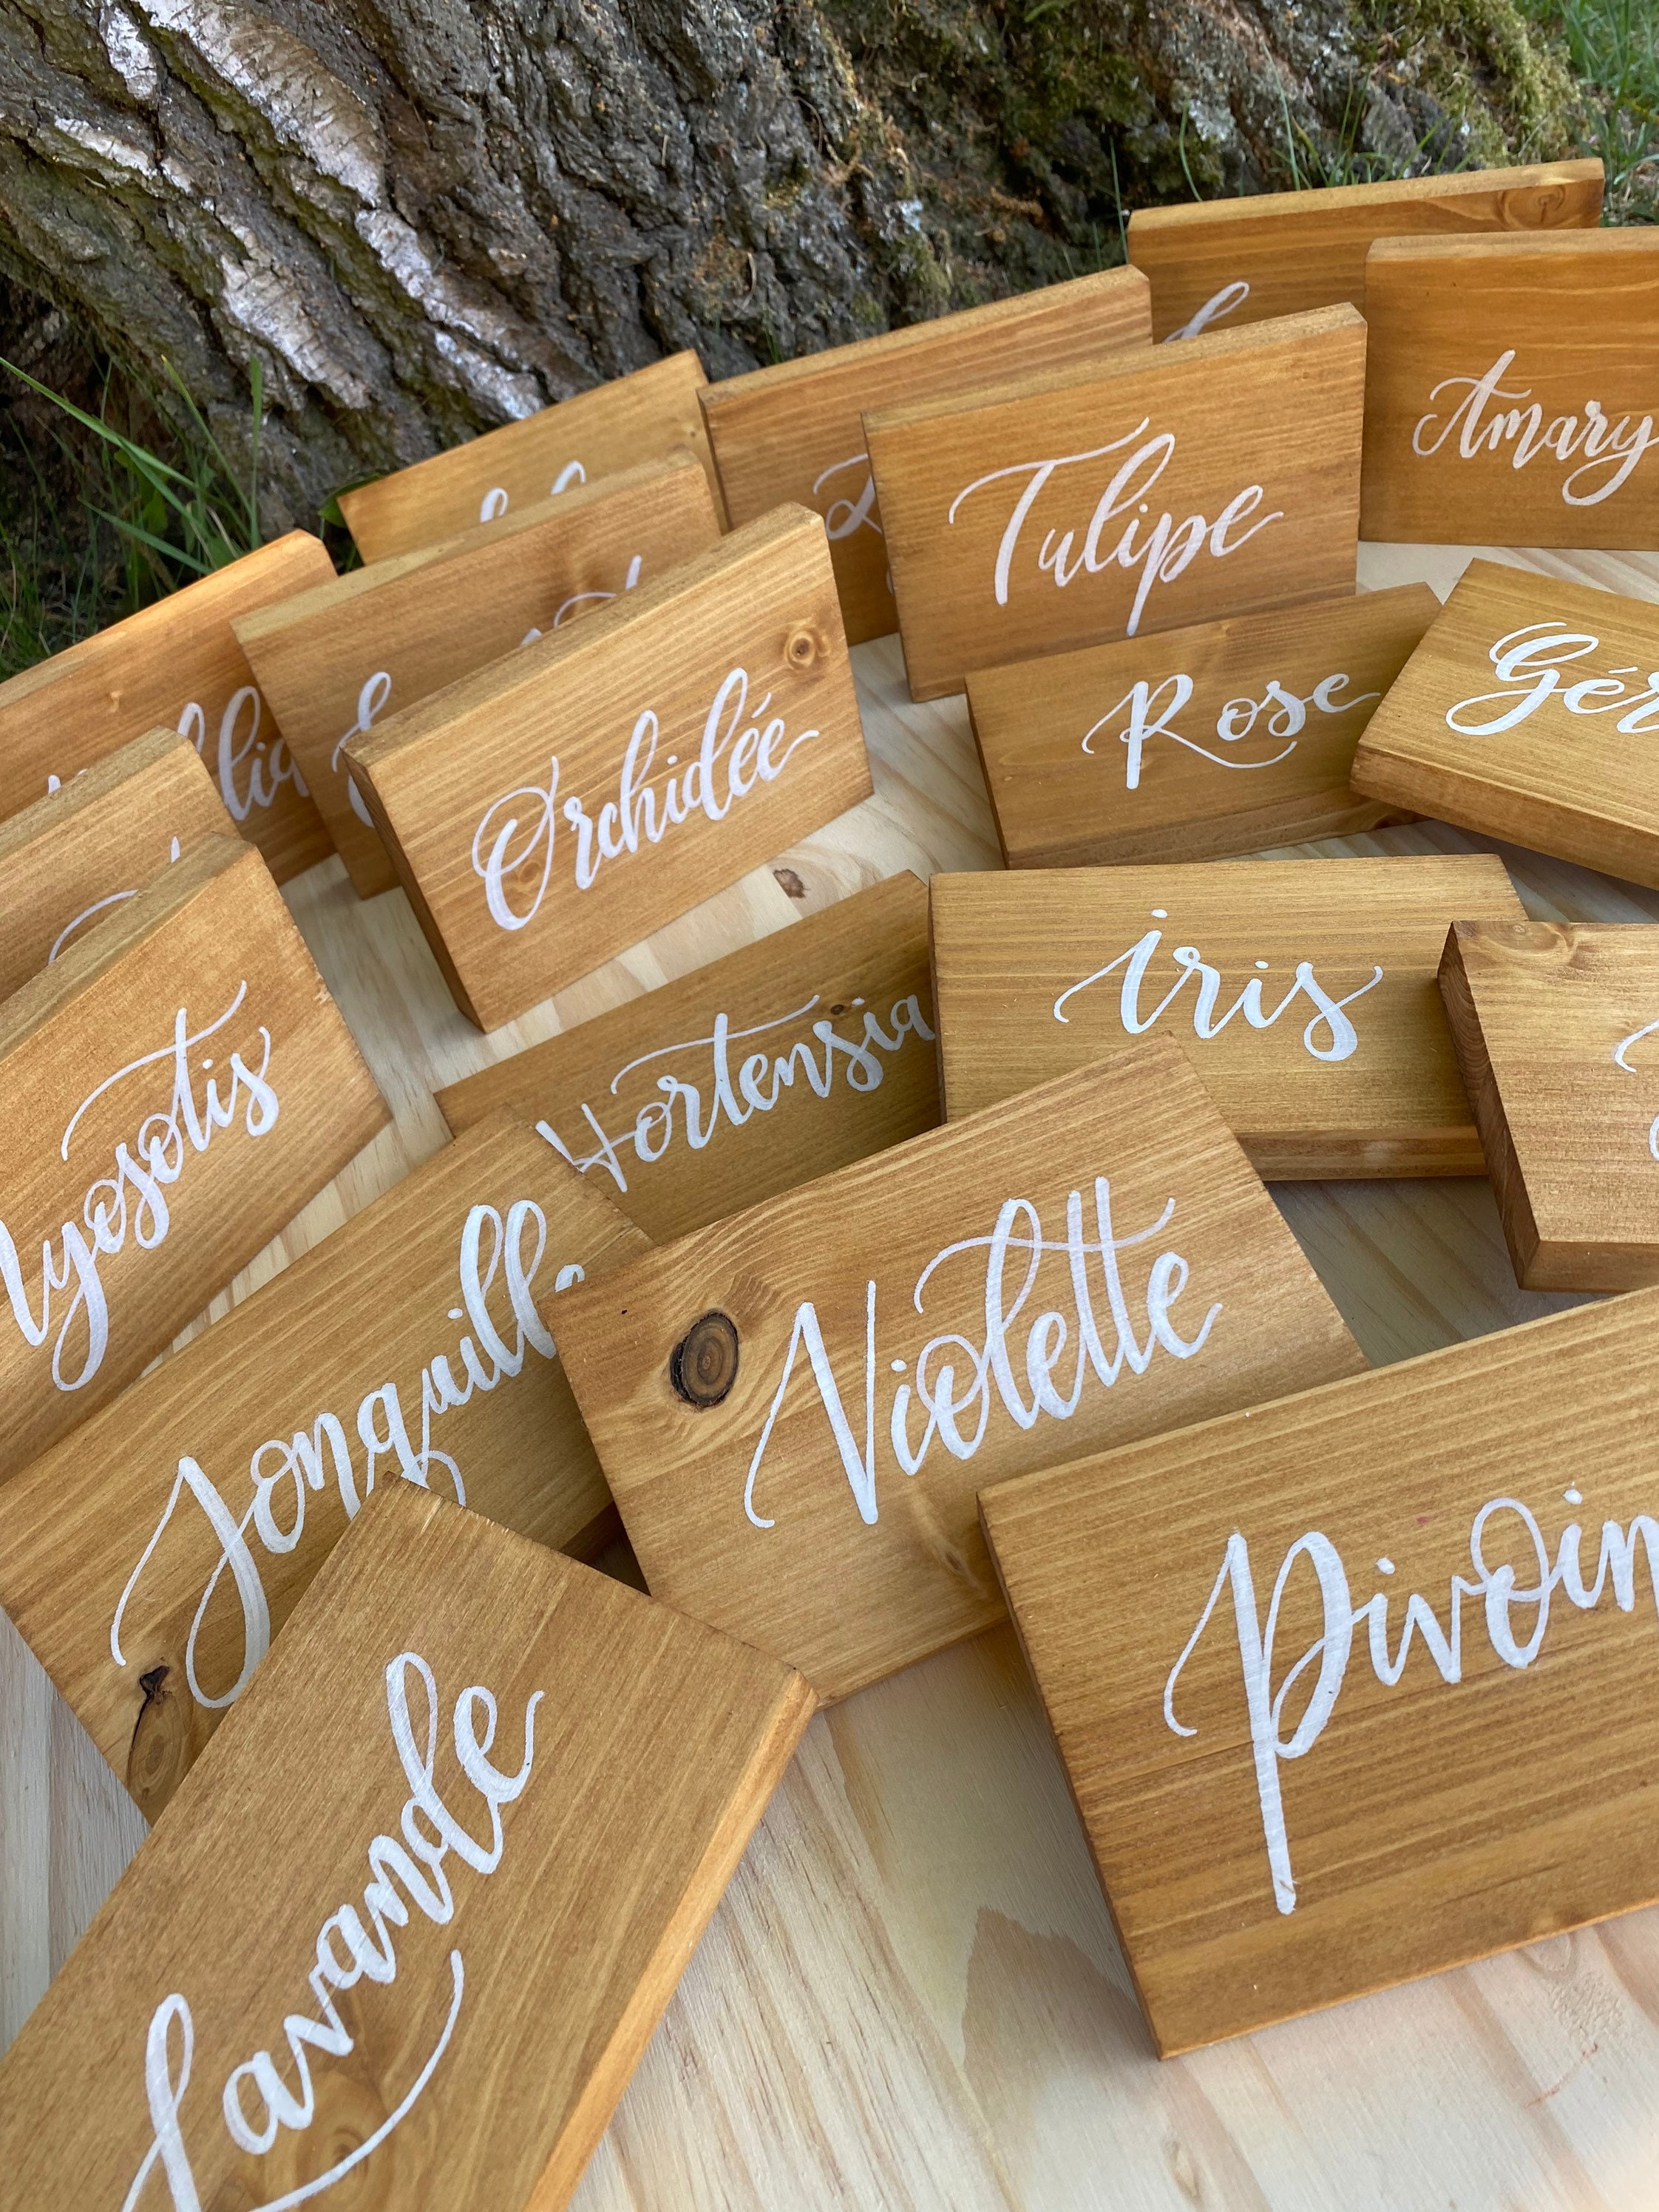 Your Table Names On Wooden Plate Center Table Rustic Wedding Customizable Panel With The Words Of Your Choice